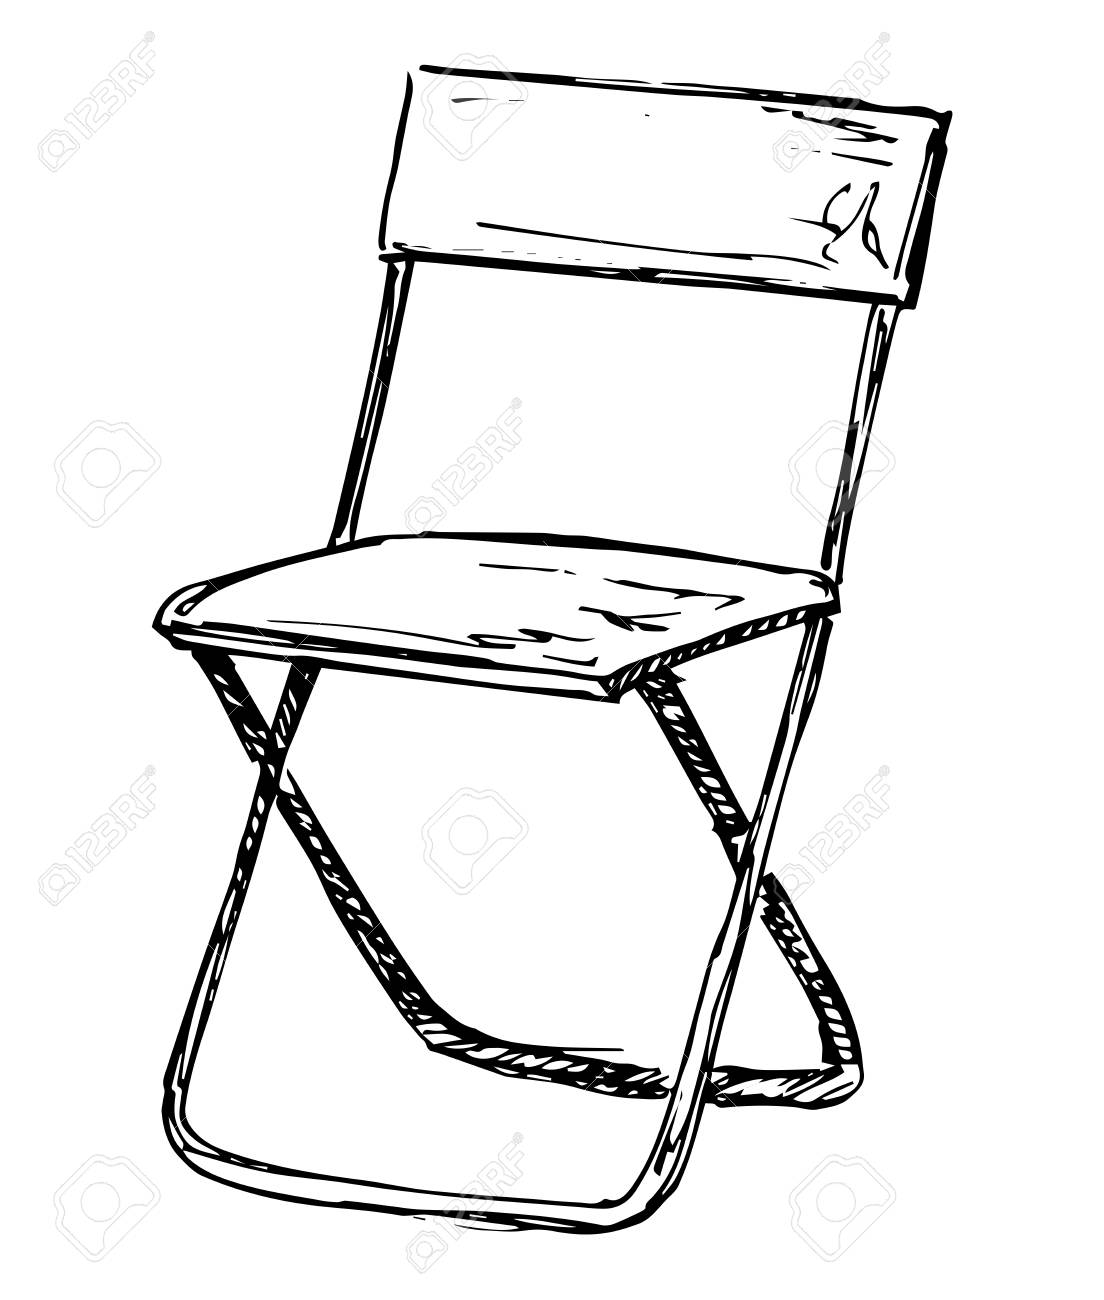 Outstanding Folding Chair Isolated On White Background Vector Illustration Pdpeps Interior Chair Design Pdpepsorg